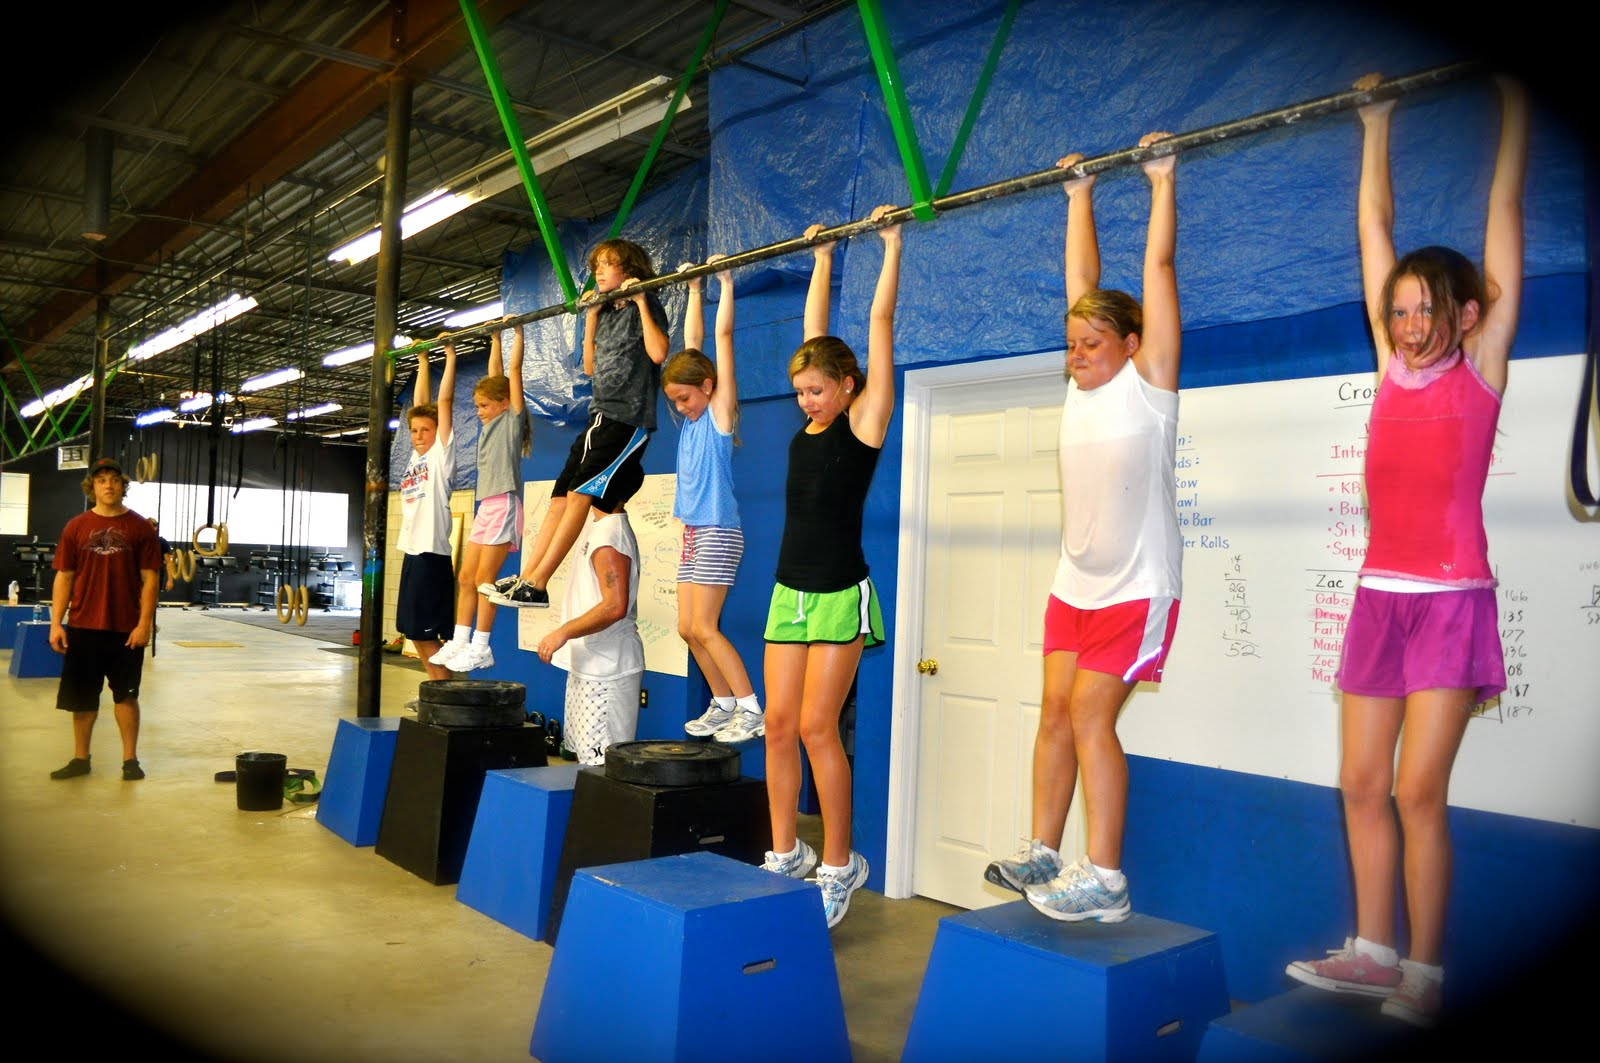 Pull ups for older kids viewing gallery